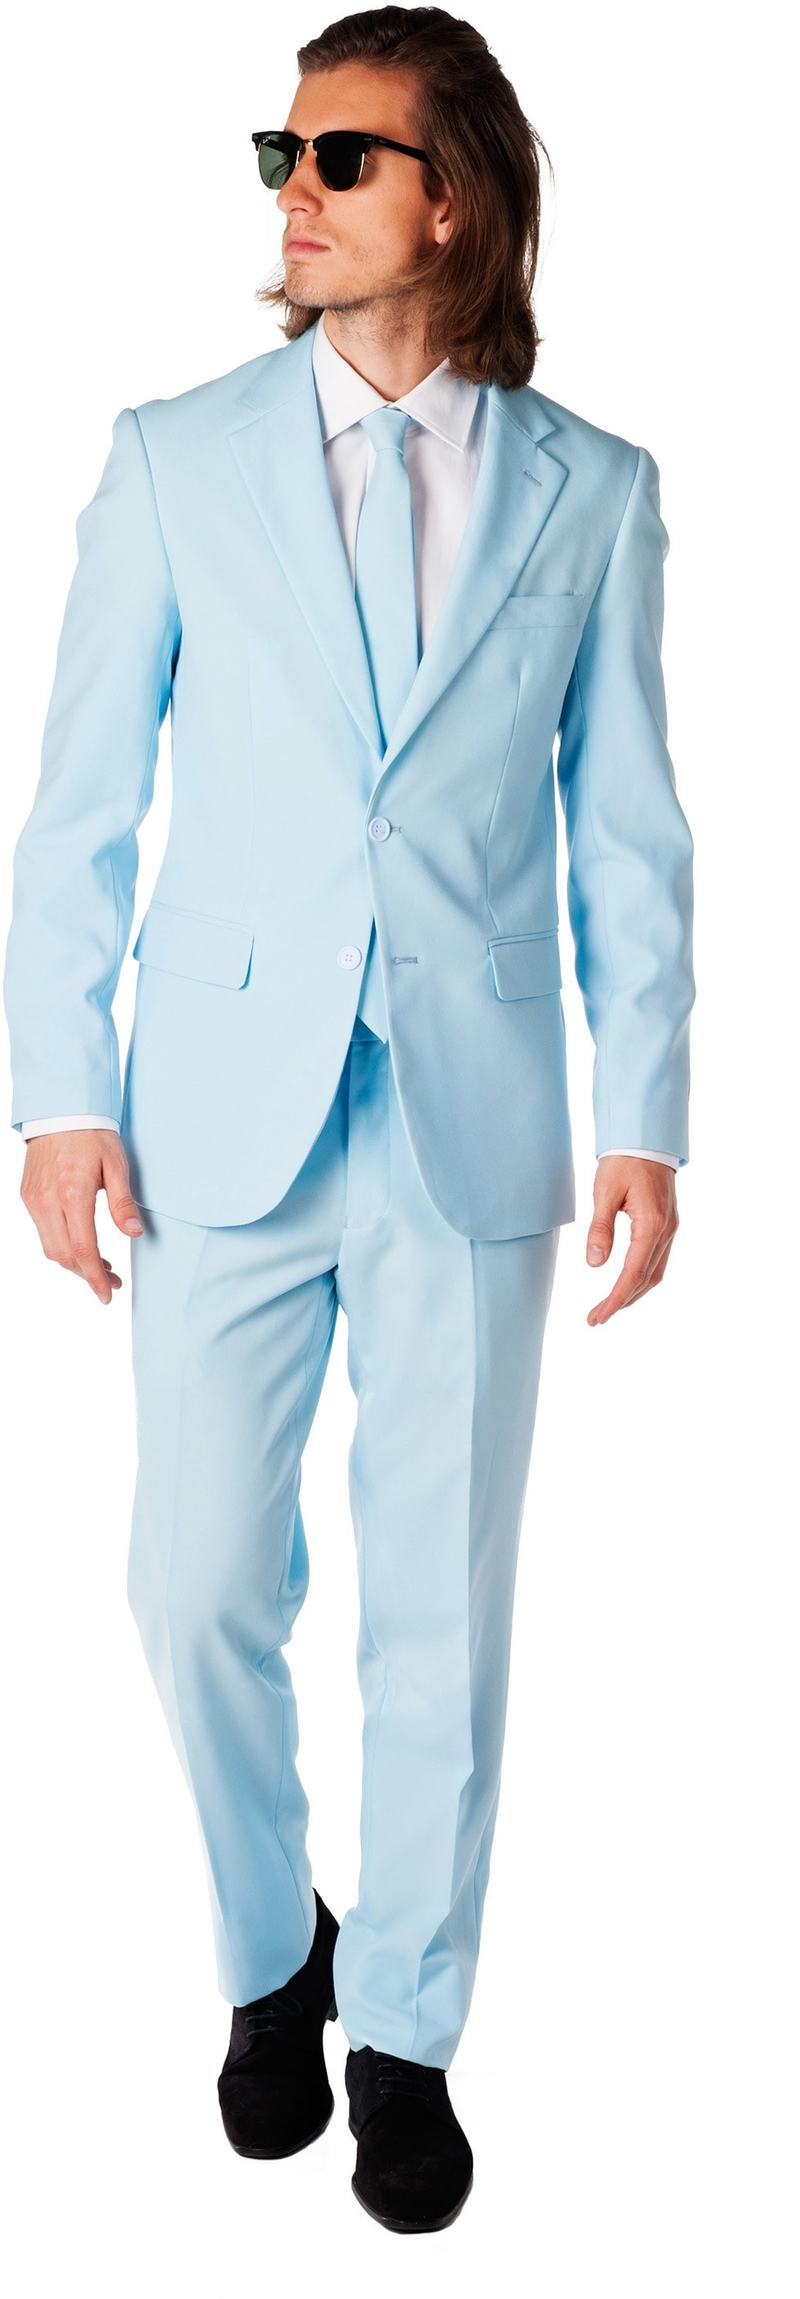 OppoSuits Cool Blue Suit photo 0